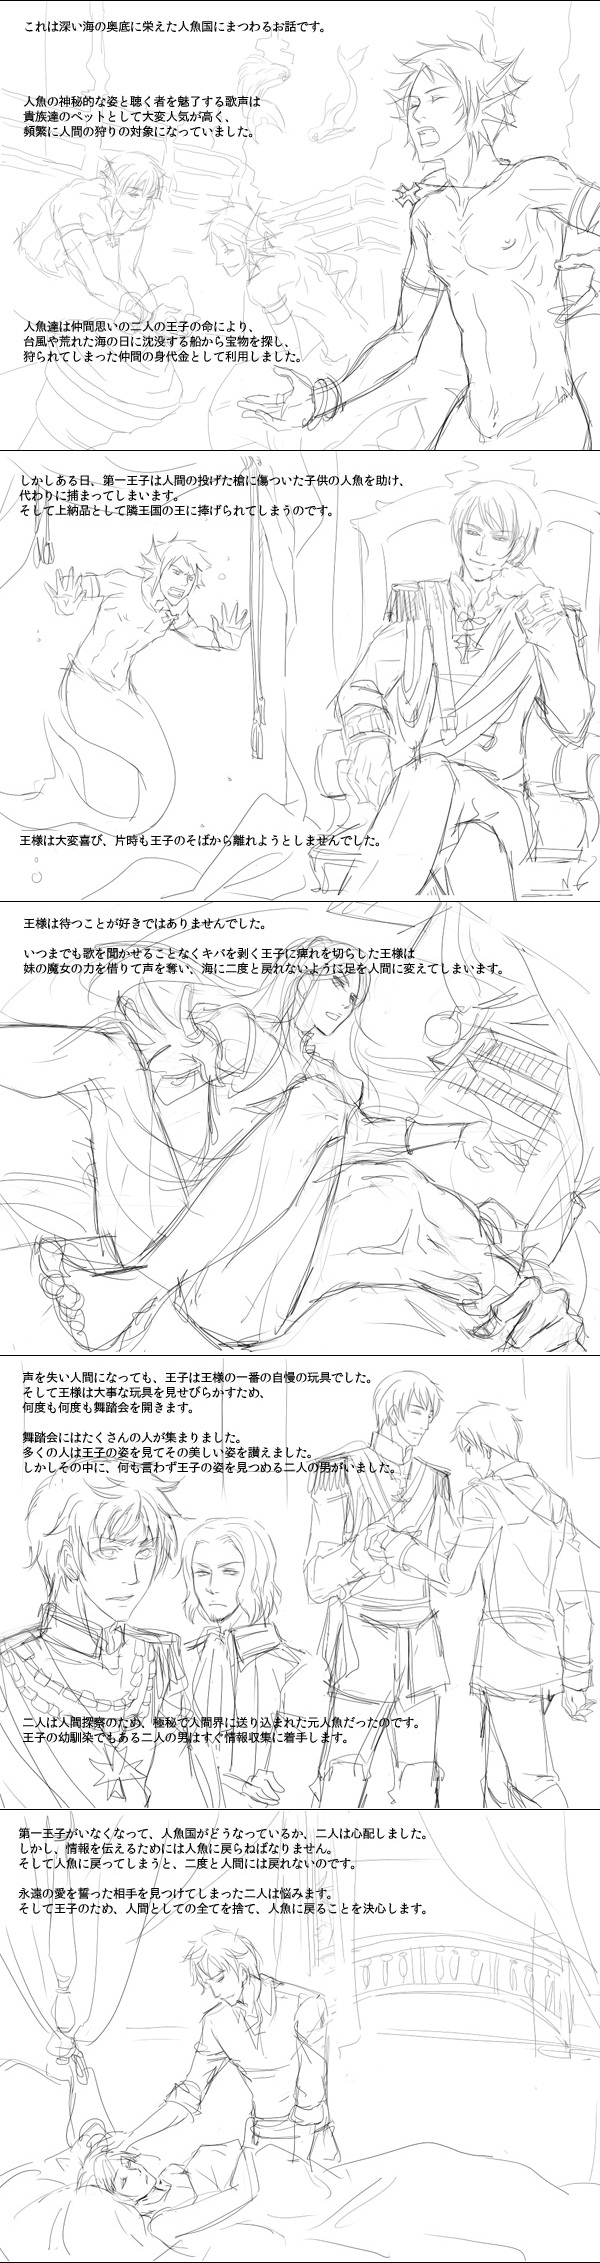 Tags: Anime, Axis Powers: Hetalia, Russia, South Italy, Prussia, France, Spain, Belarus, Germany, Translation Request, Comic, Allied Forces, Mediterranean Countries